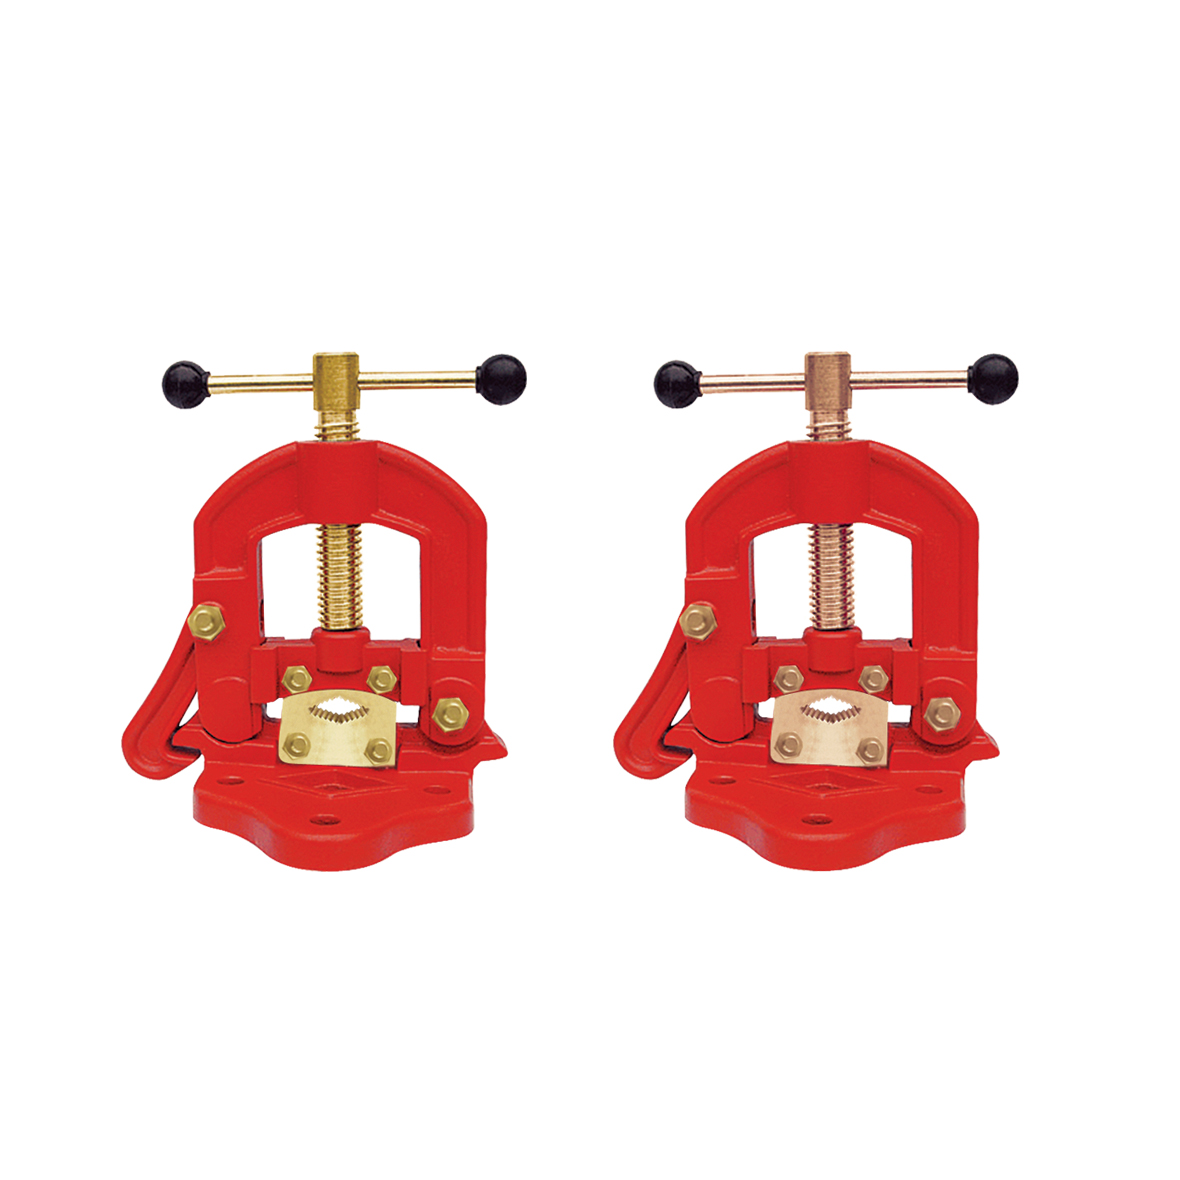 Locking Pipe Vices